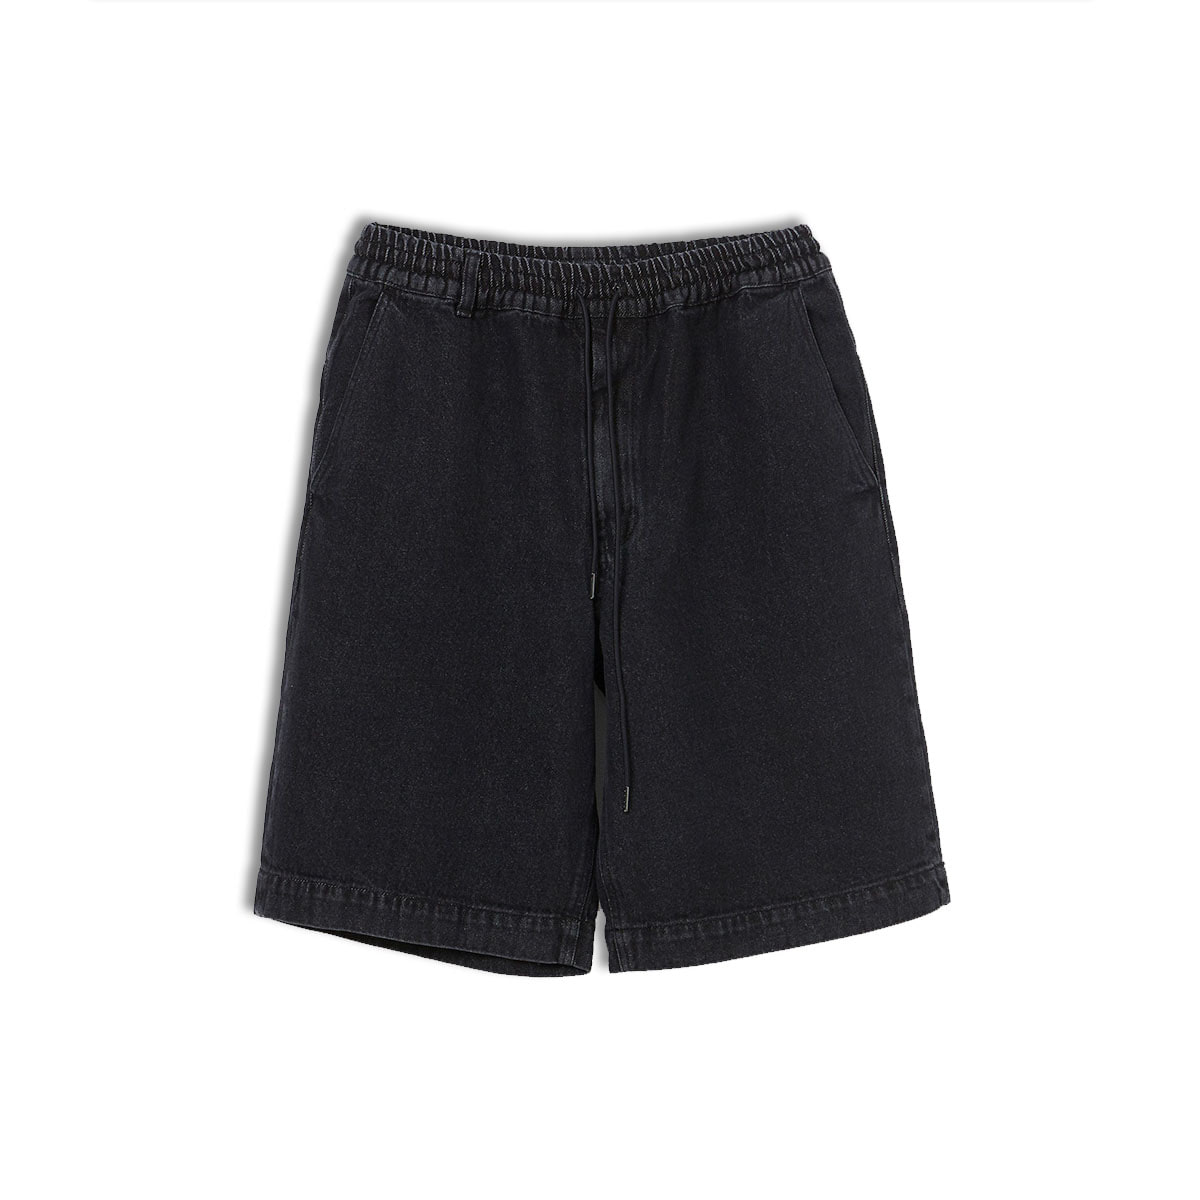 [ENIGMA] WIDE DENIM SHORTS 'WASHED BLACK'